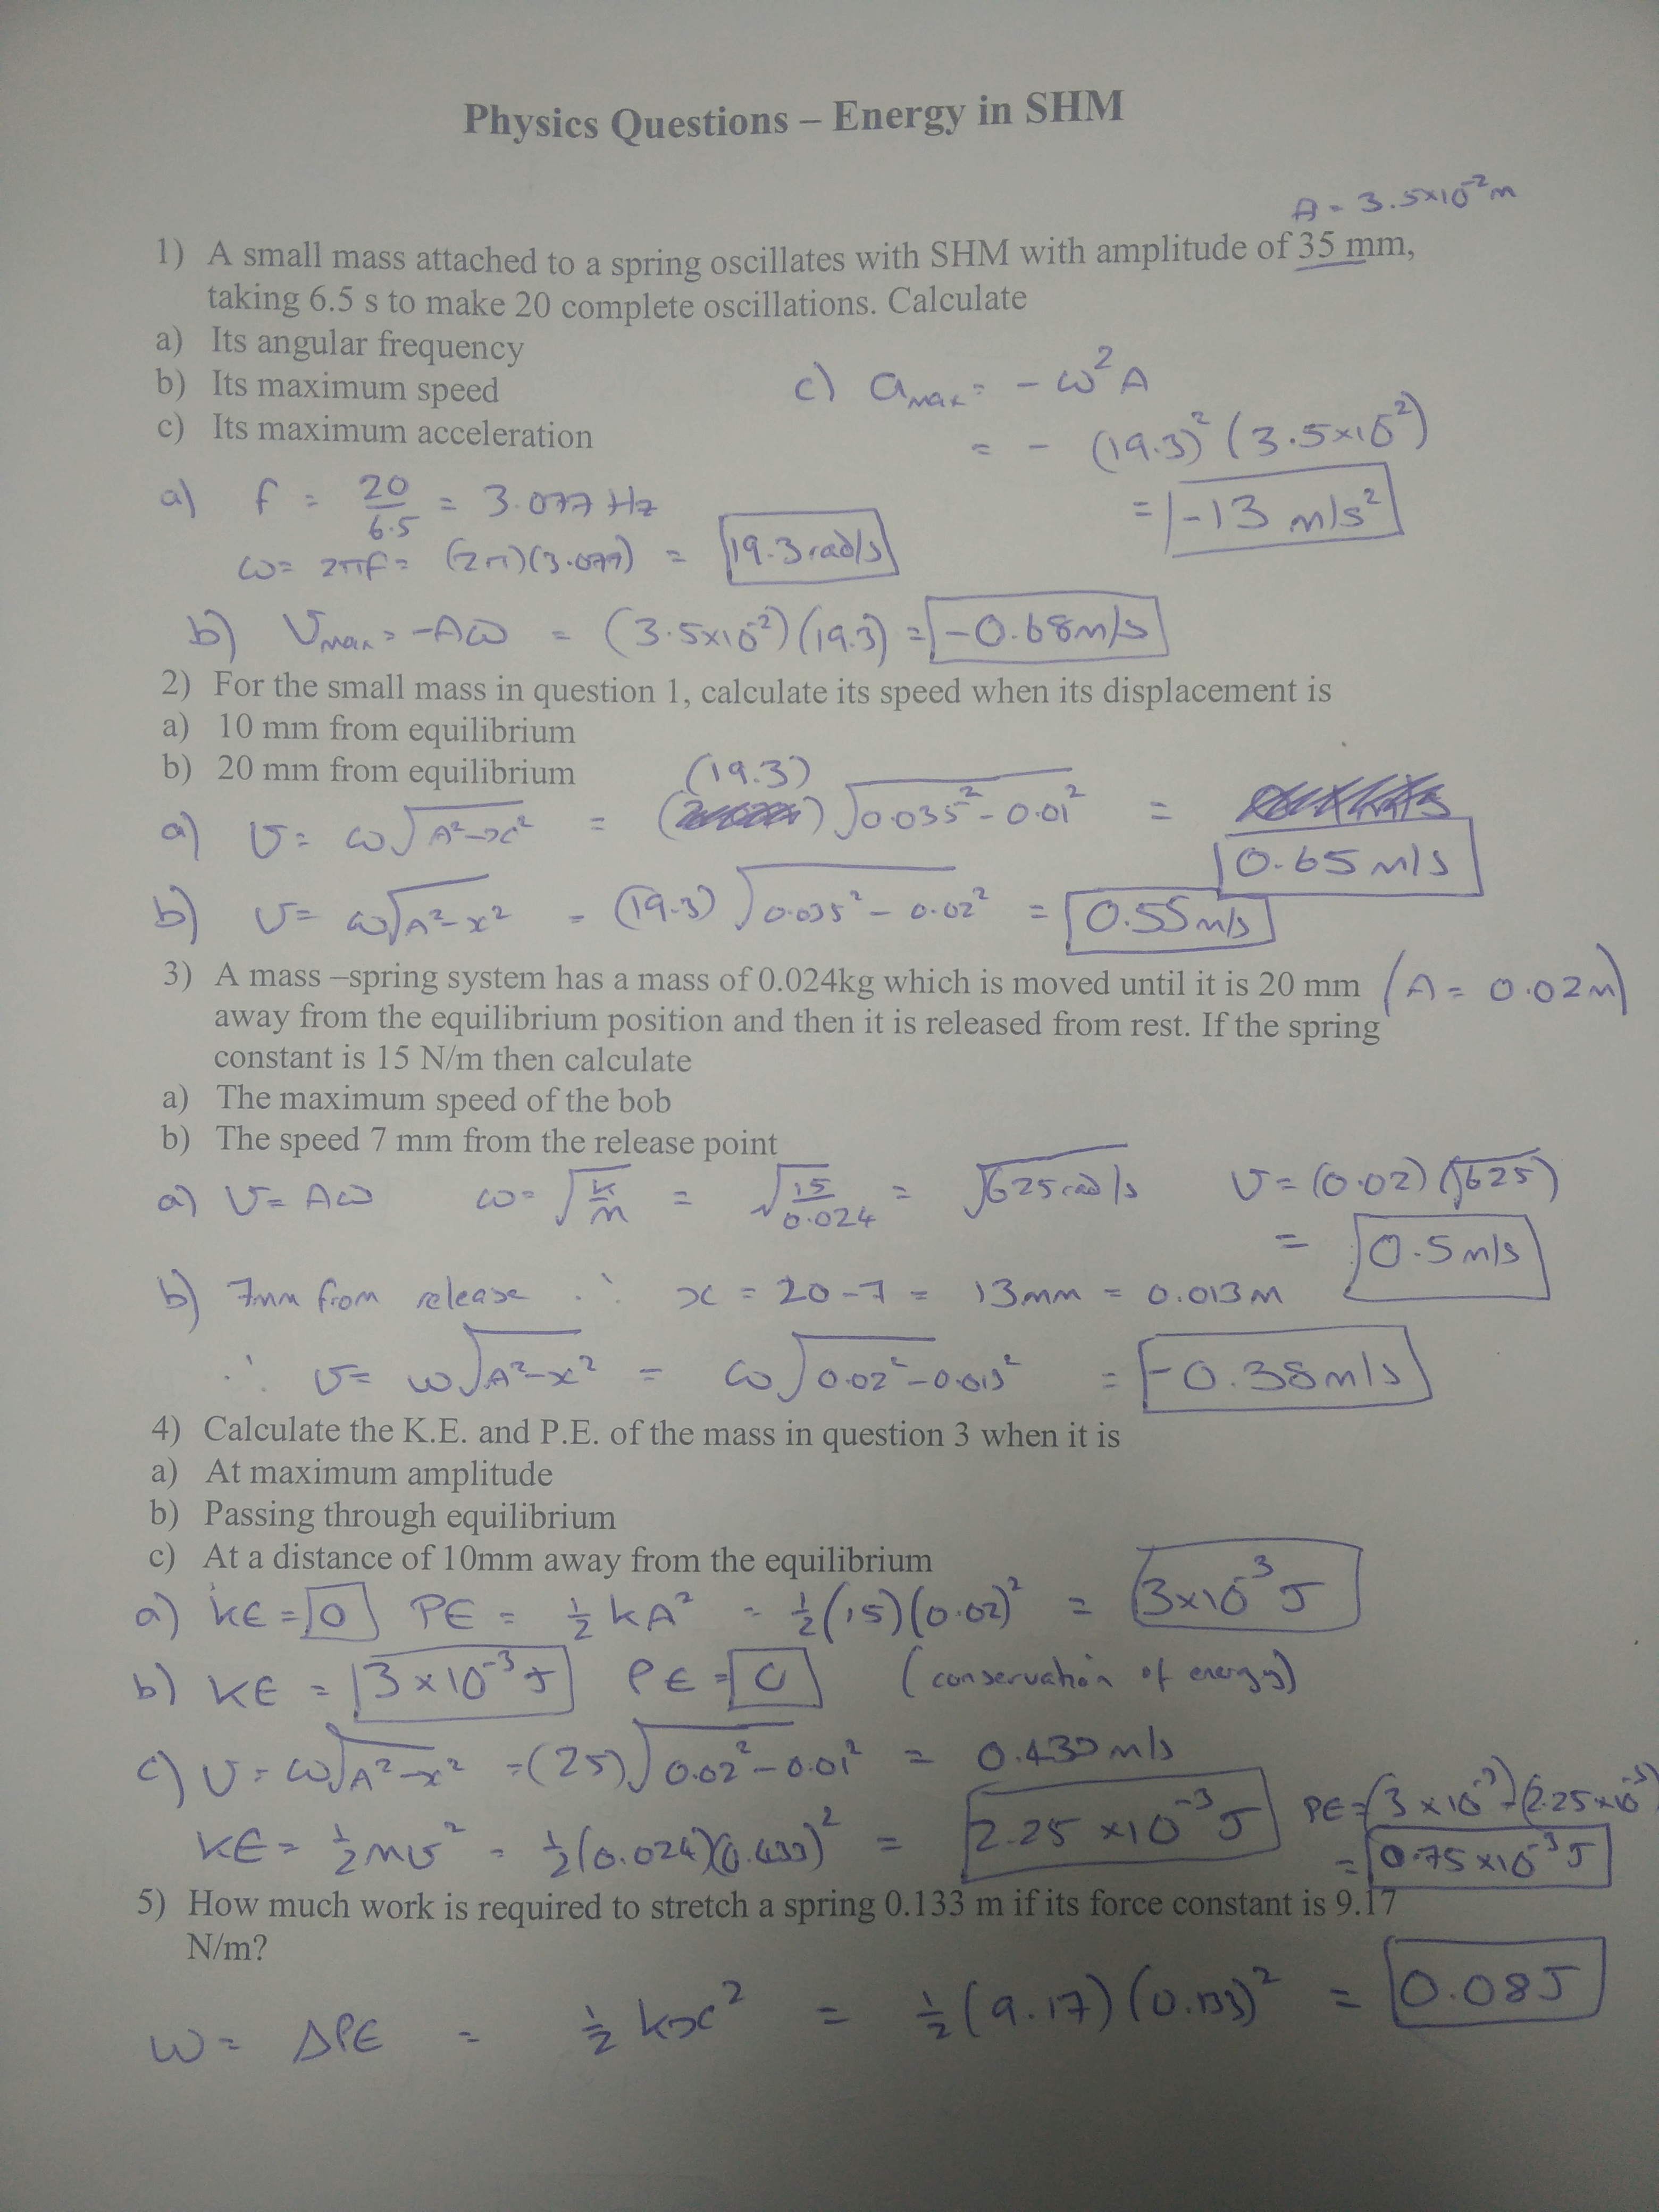 M5 Answers to Energy in SHM Worksheet | physics@bcceip